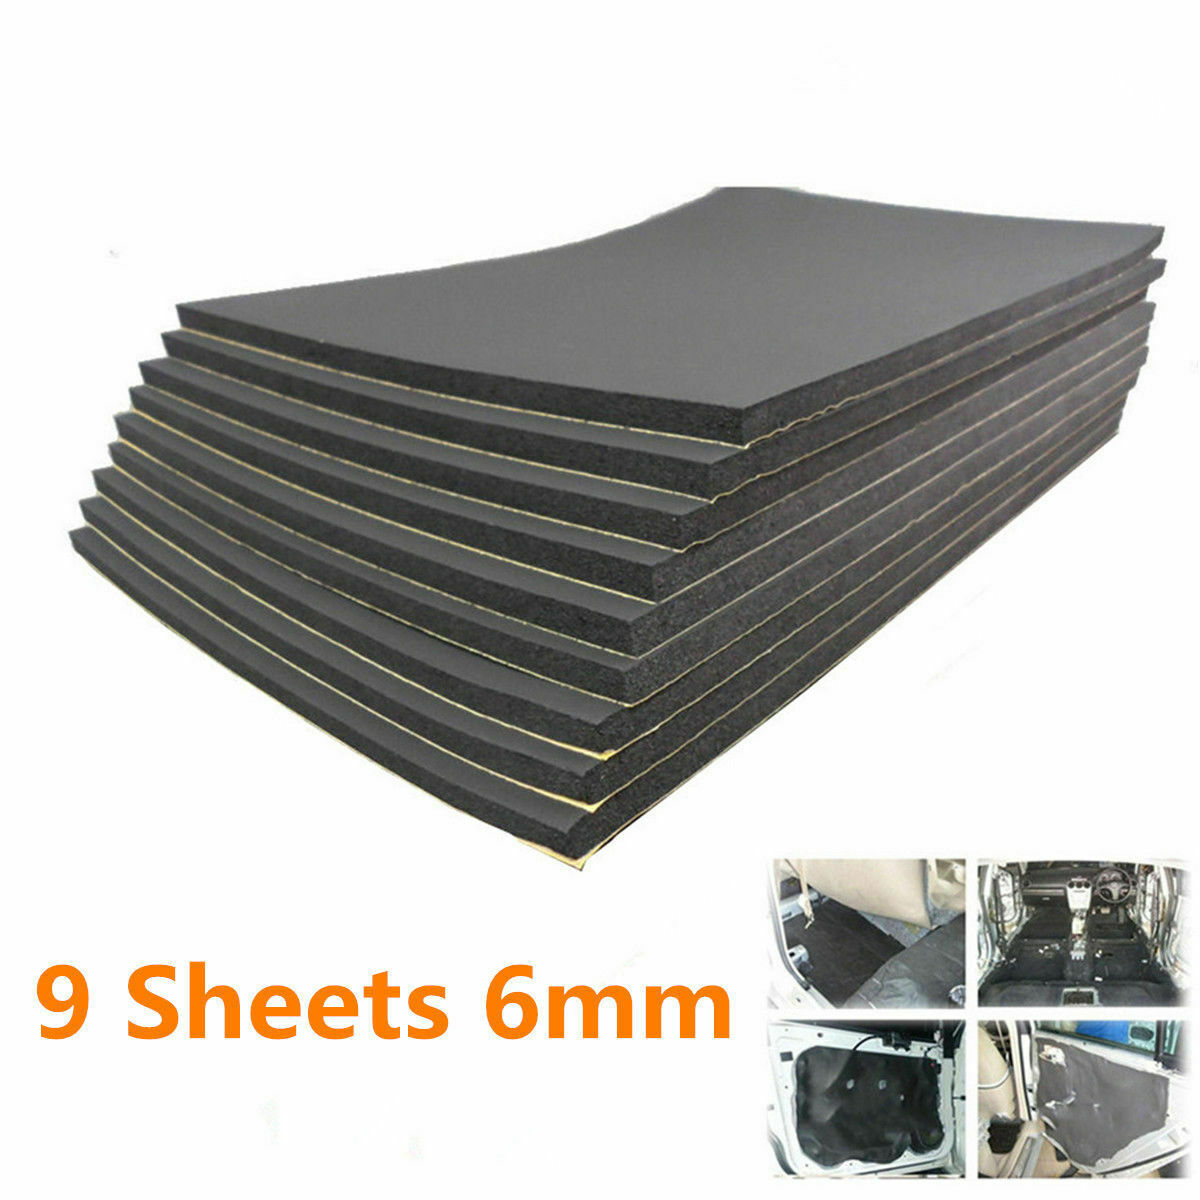 9pcs Car Auto Van Sound Proofing Deadening Insulation Foam 30cm*50cm*6mm Thermal Insulation In Dissipating Heat